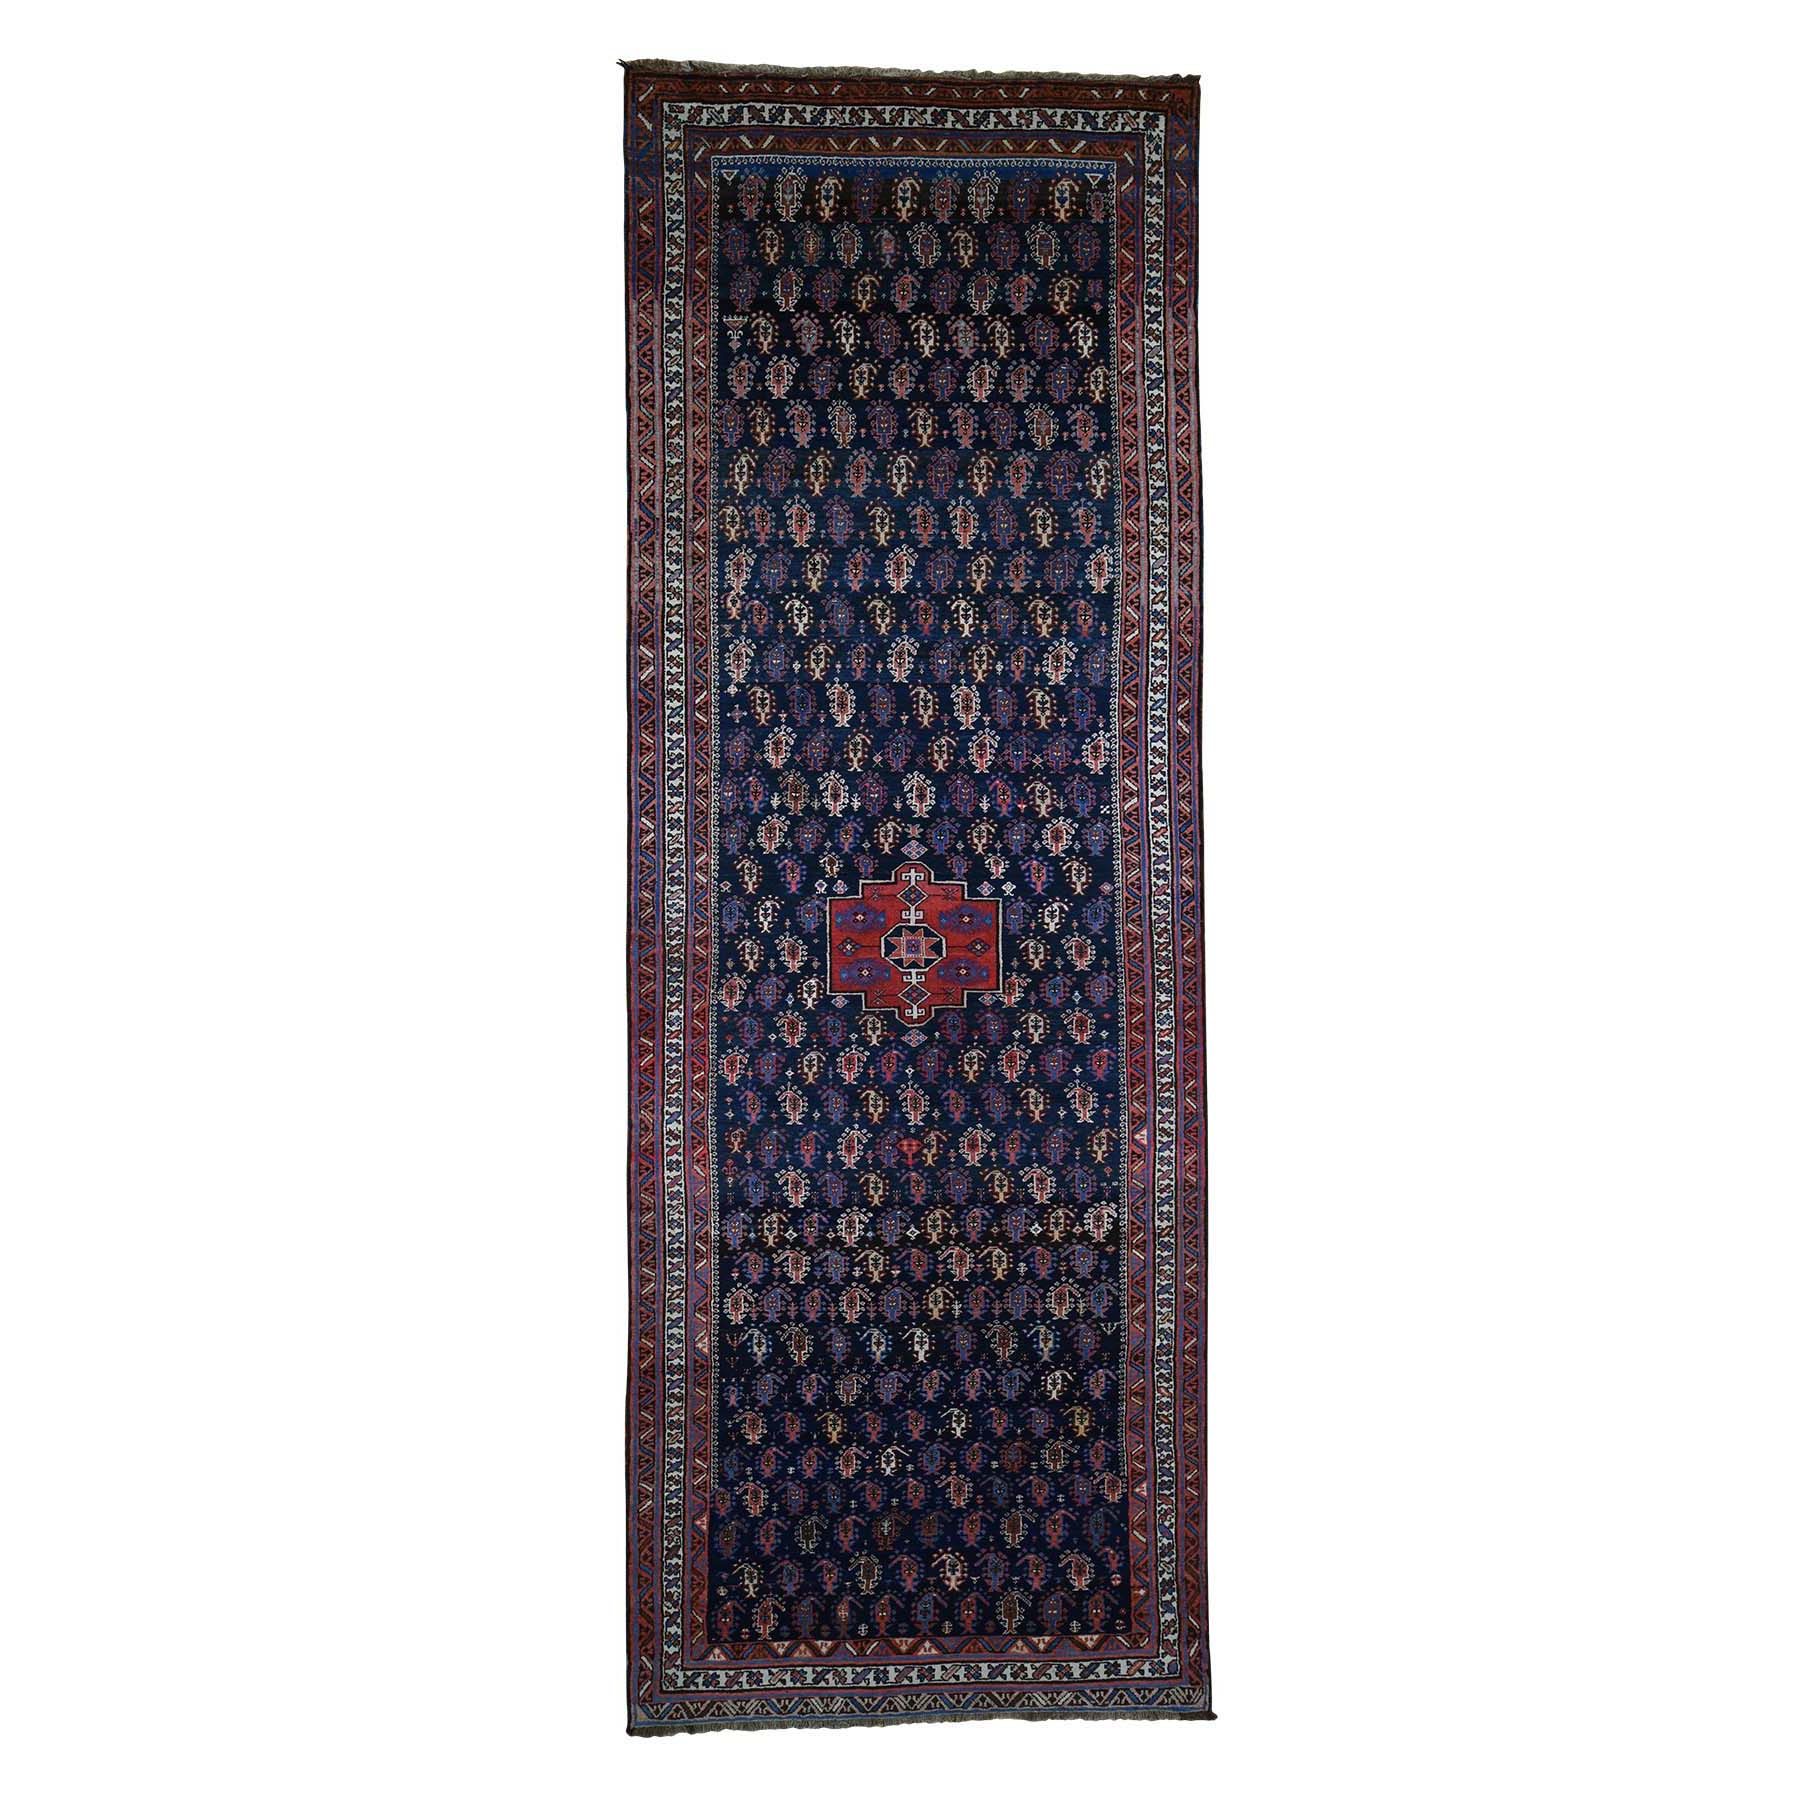 Antique Collection Hand Knotted Blue Rug No: 182122